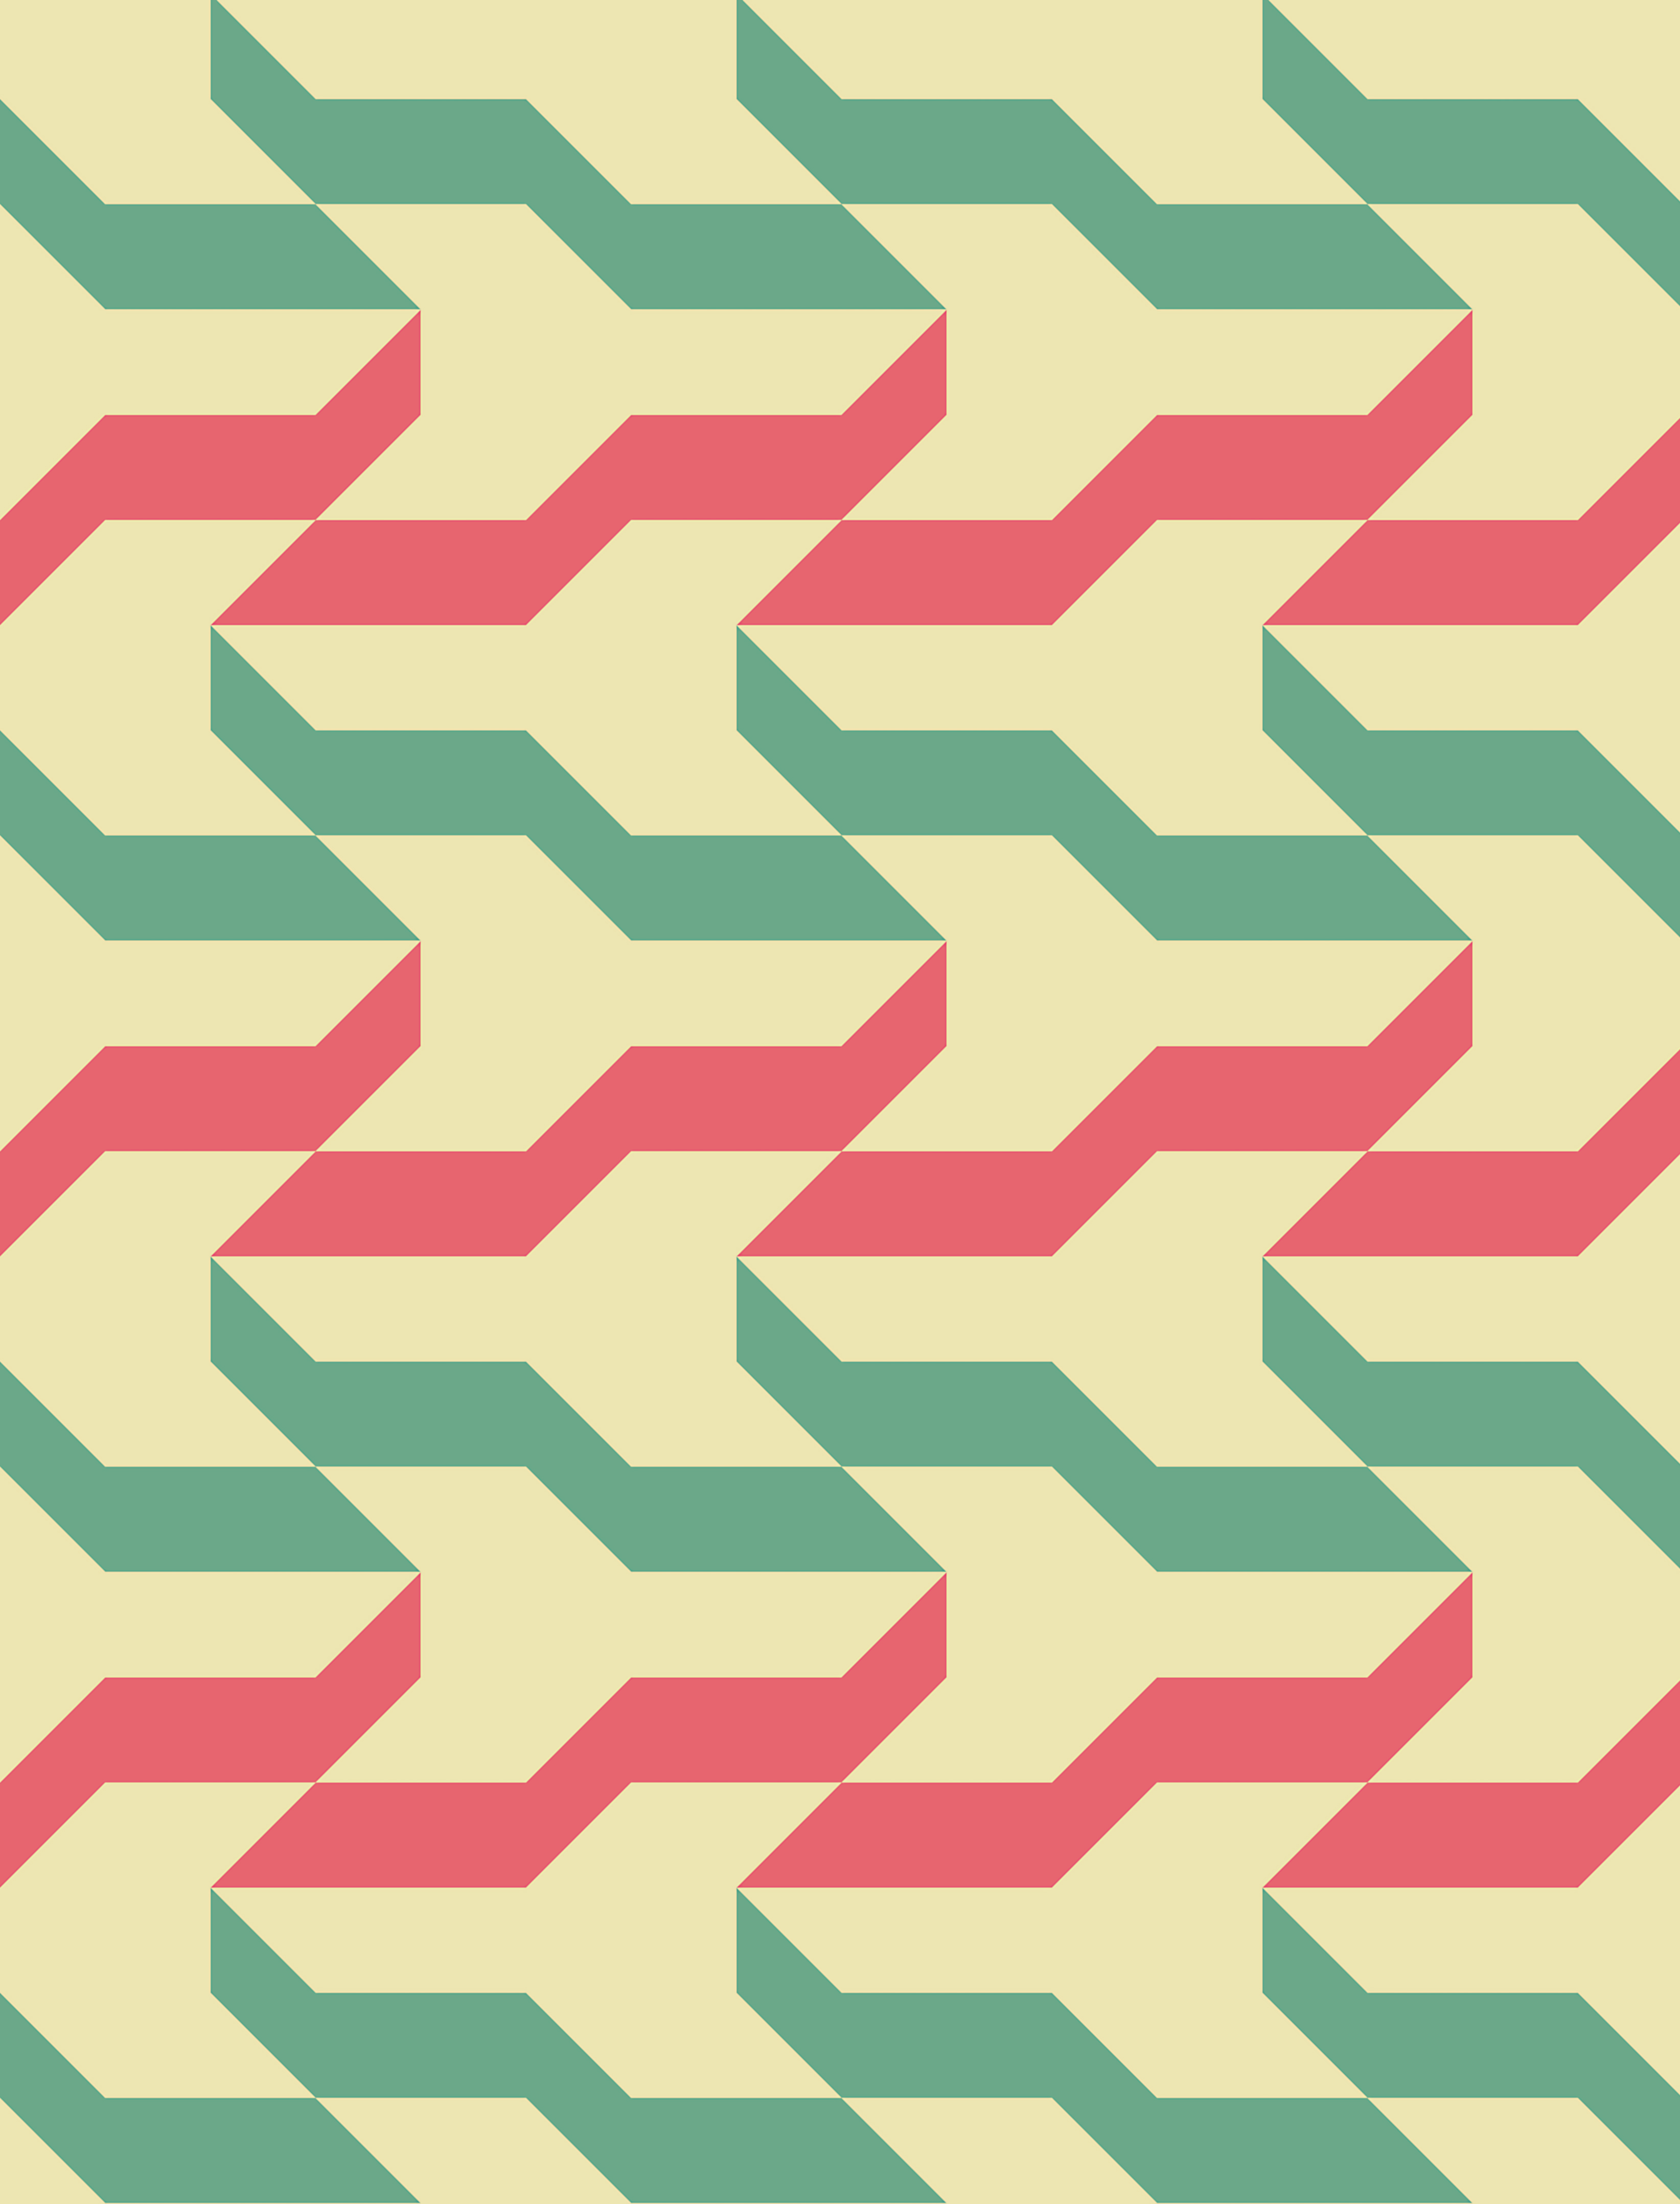 Pattern for use